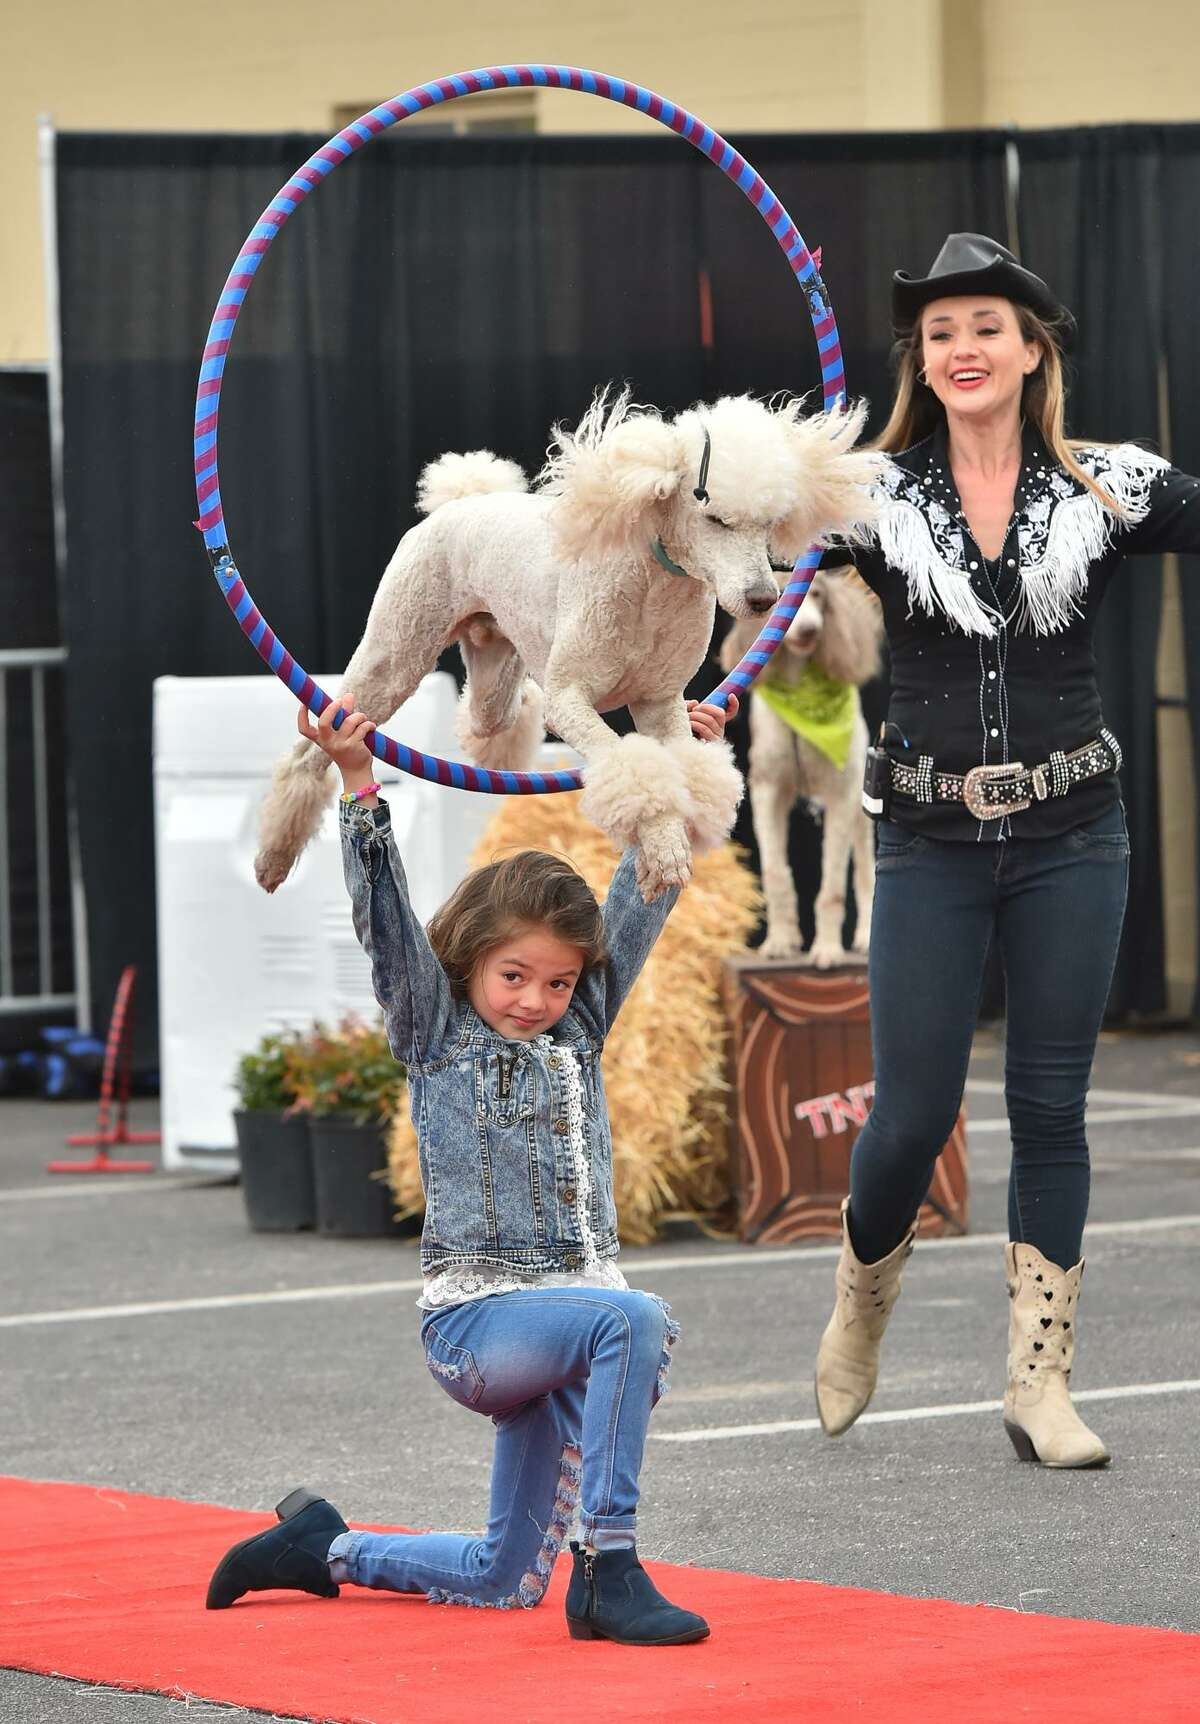 Katerina Pompeyo has a show poodle soar over her head as her mother, Natalya Pompeyo looks on. The Pompeyo Family Dog Show is one of the new attractions at this year's San Antonio Stock Show & Rodeo. The show, which has toured in the U.S., Canada and the Caribbean, is running through Tuesday at the Family Fair area.